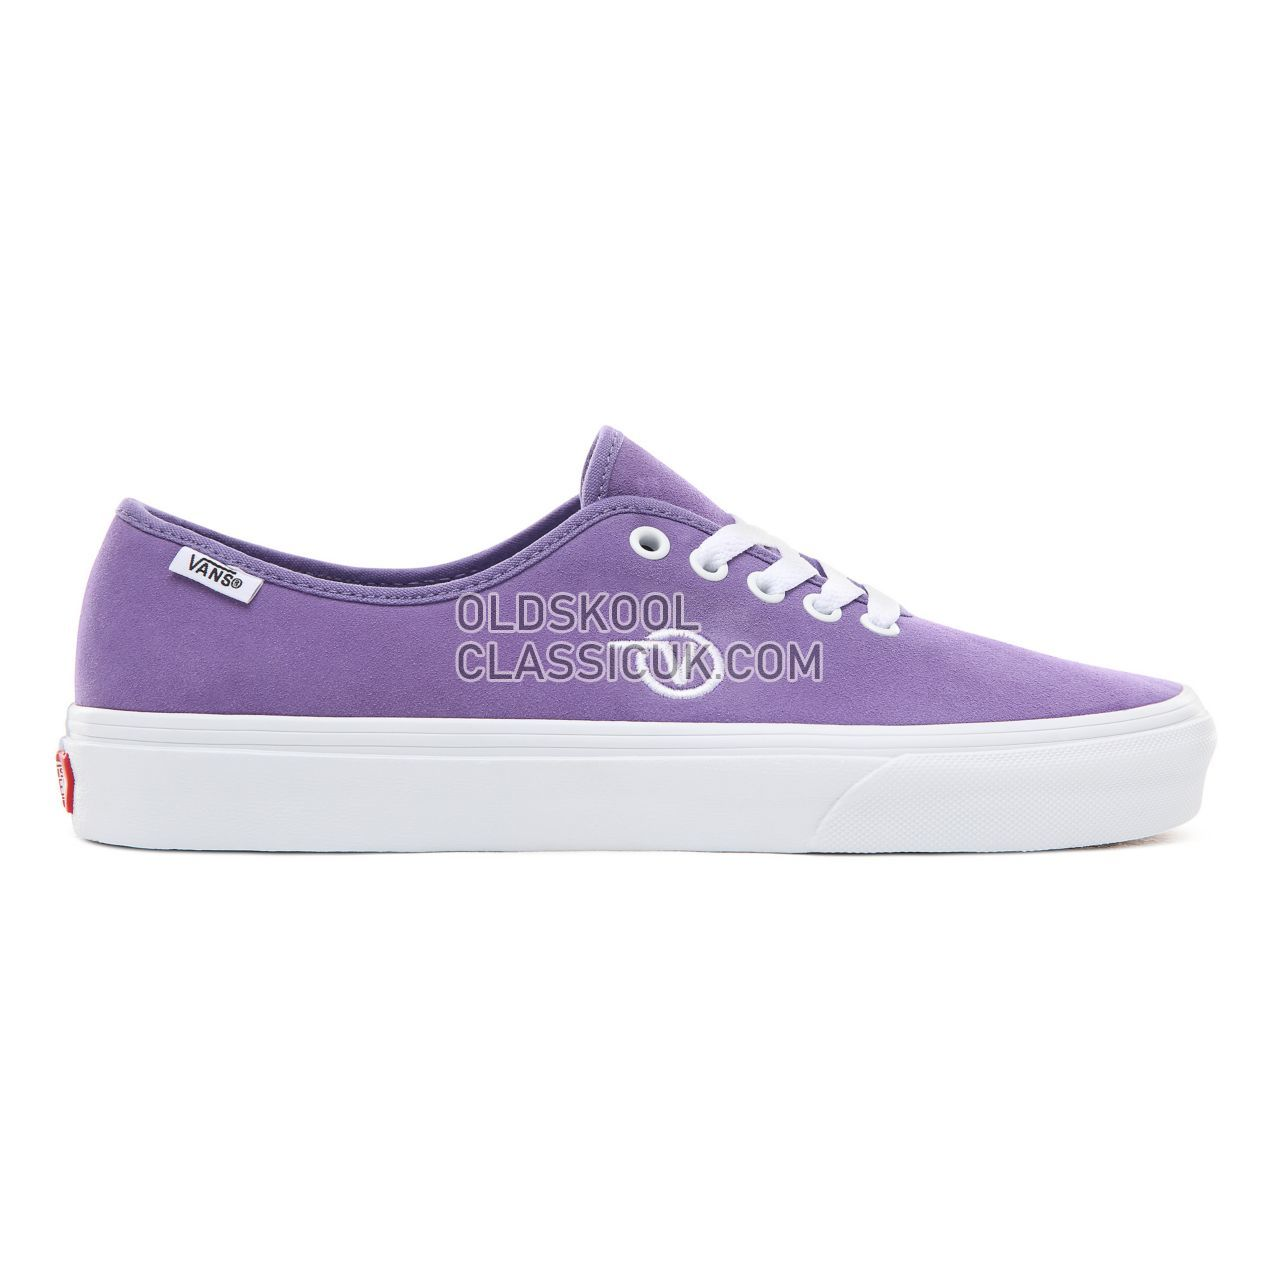 Vans Circle V Authentic One Piece Sneakers Mens (Circle V) Veronica/Suede VA3XIMS4K Shoes